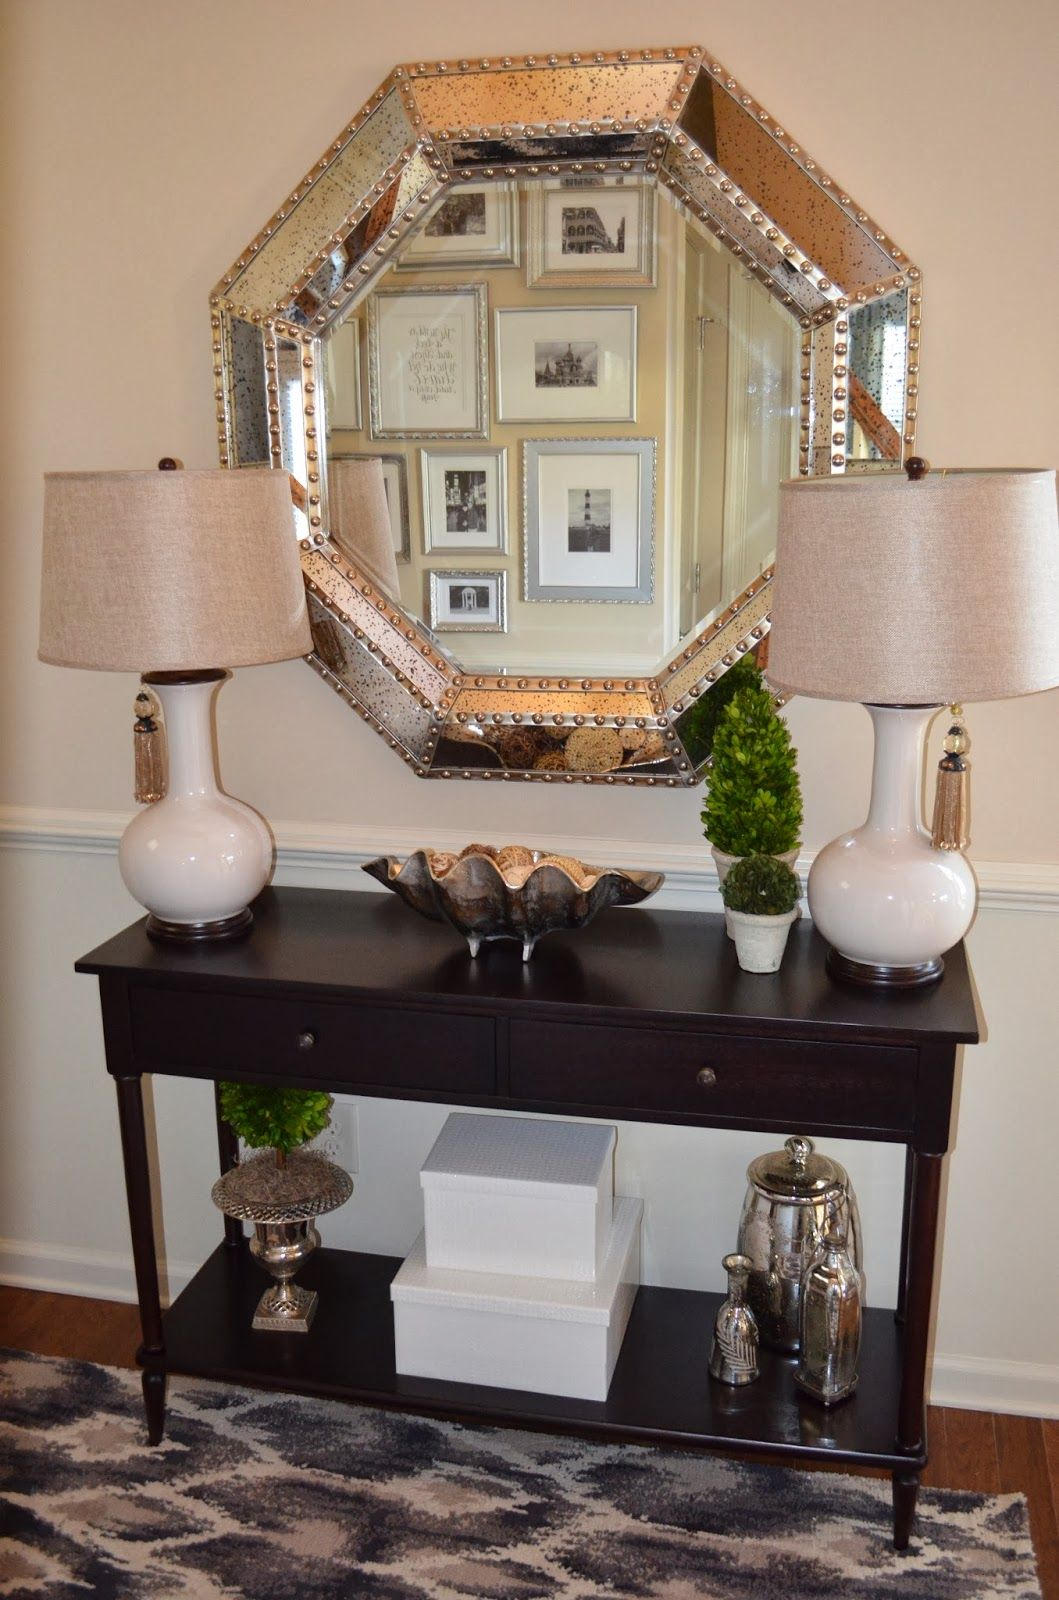 Home Foyer Decorating Ideas Foyer Decor With Entryway Console Table And Large Silver Mirror